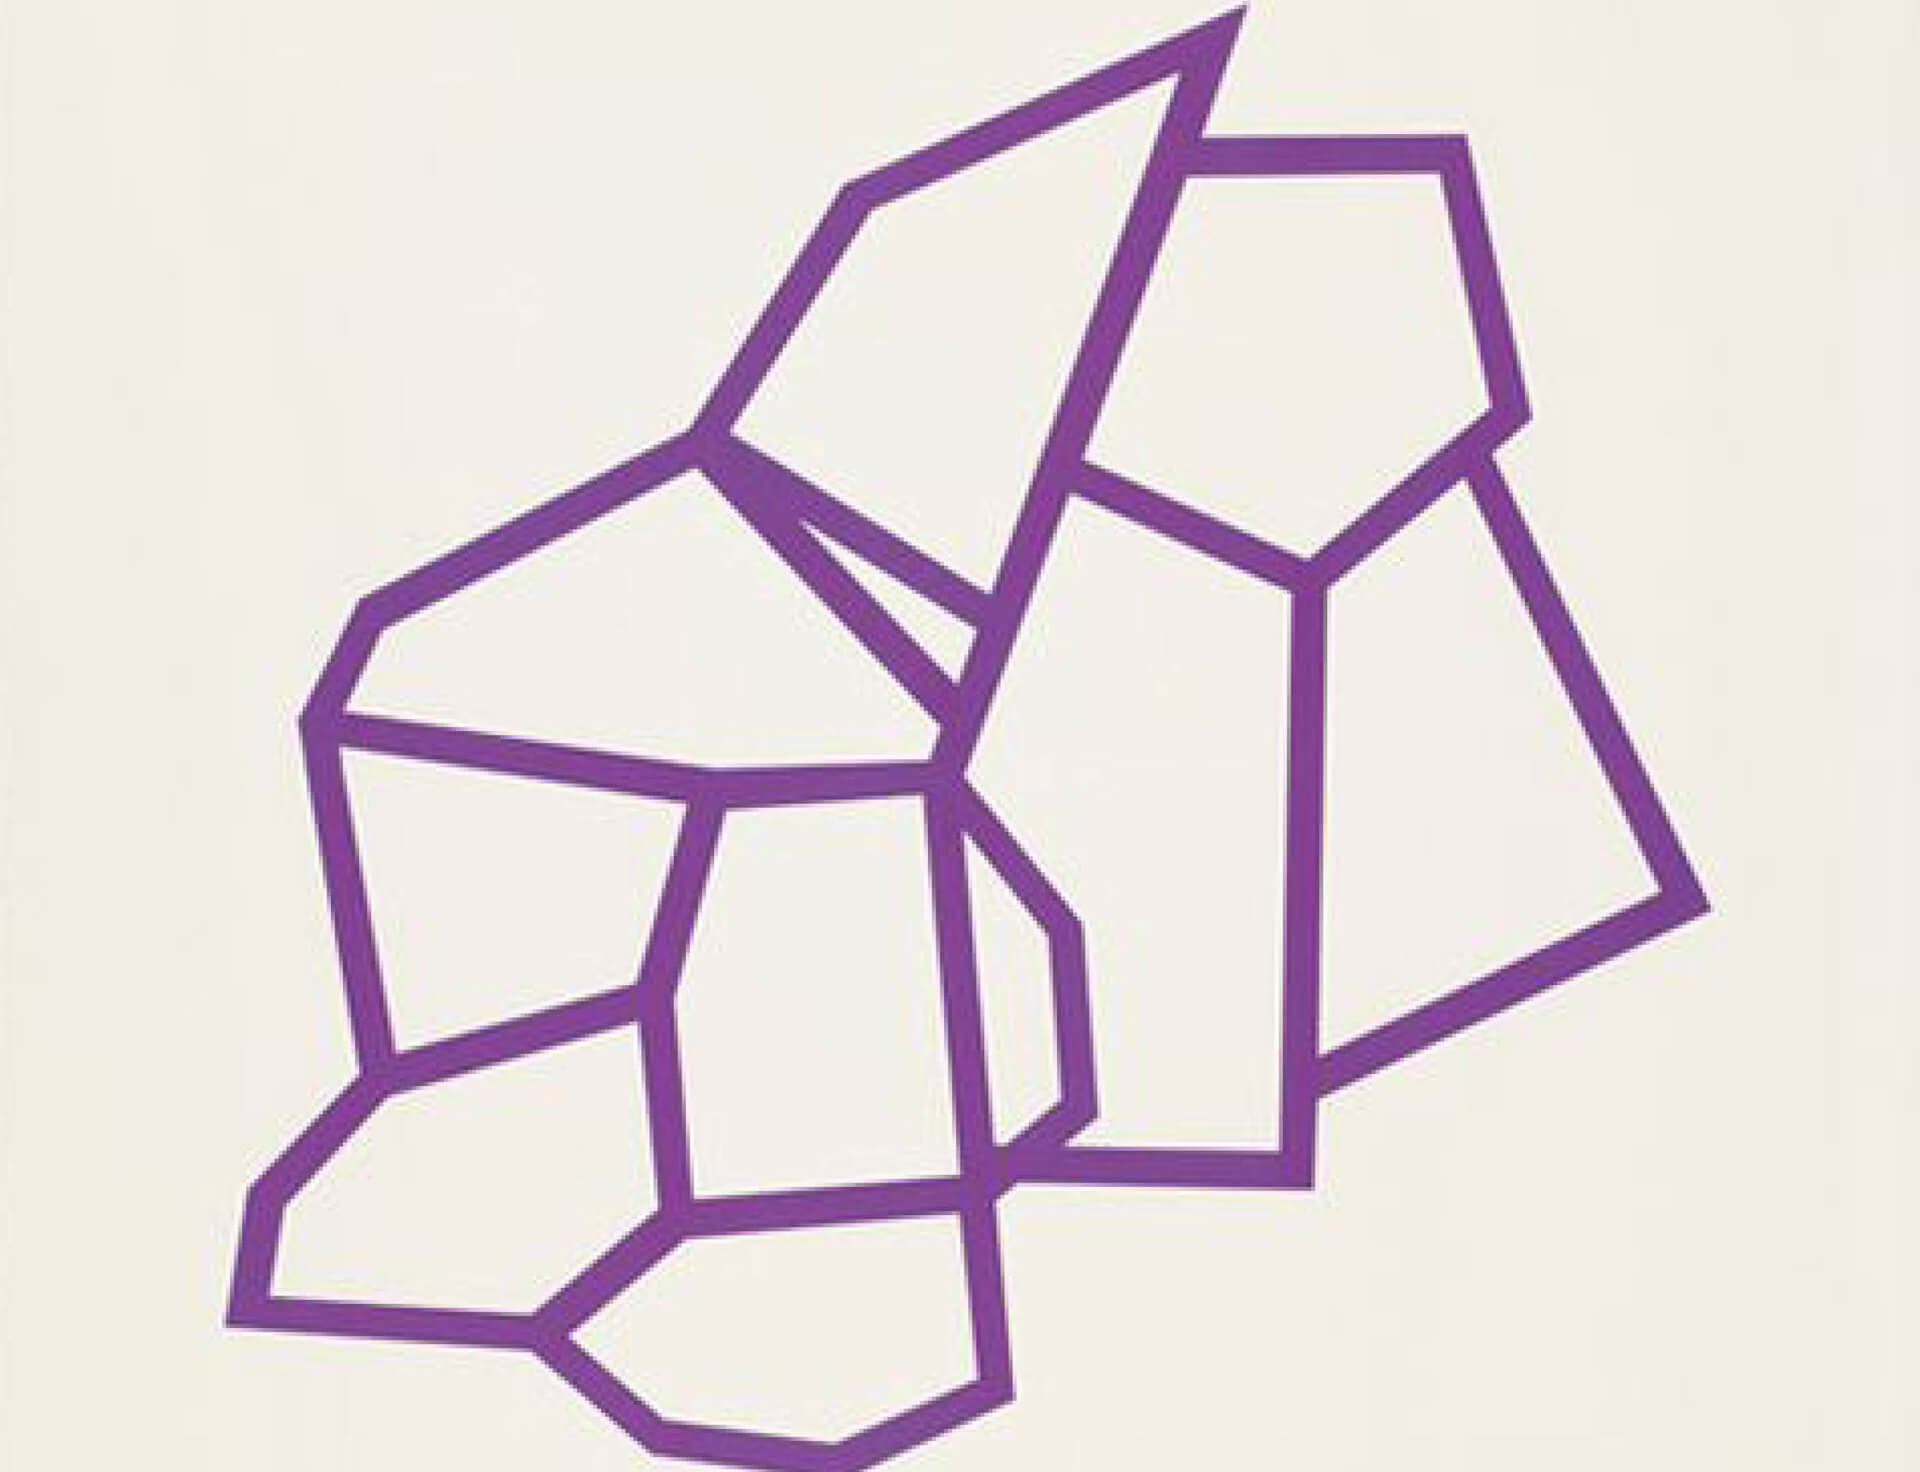 Major exhibitions by Richard Deacon to open in Germany